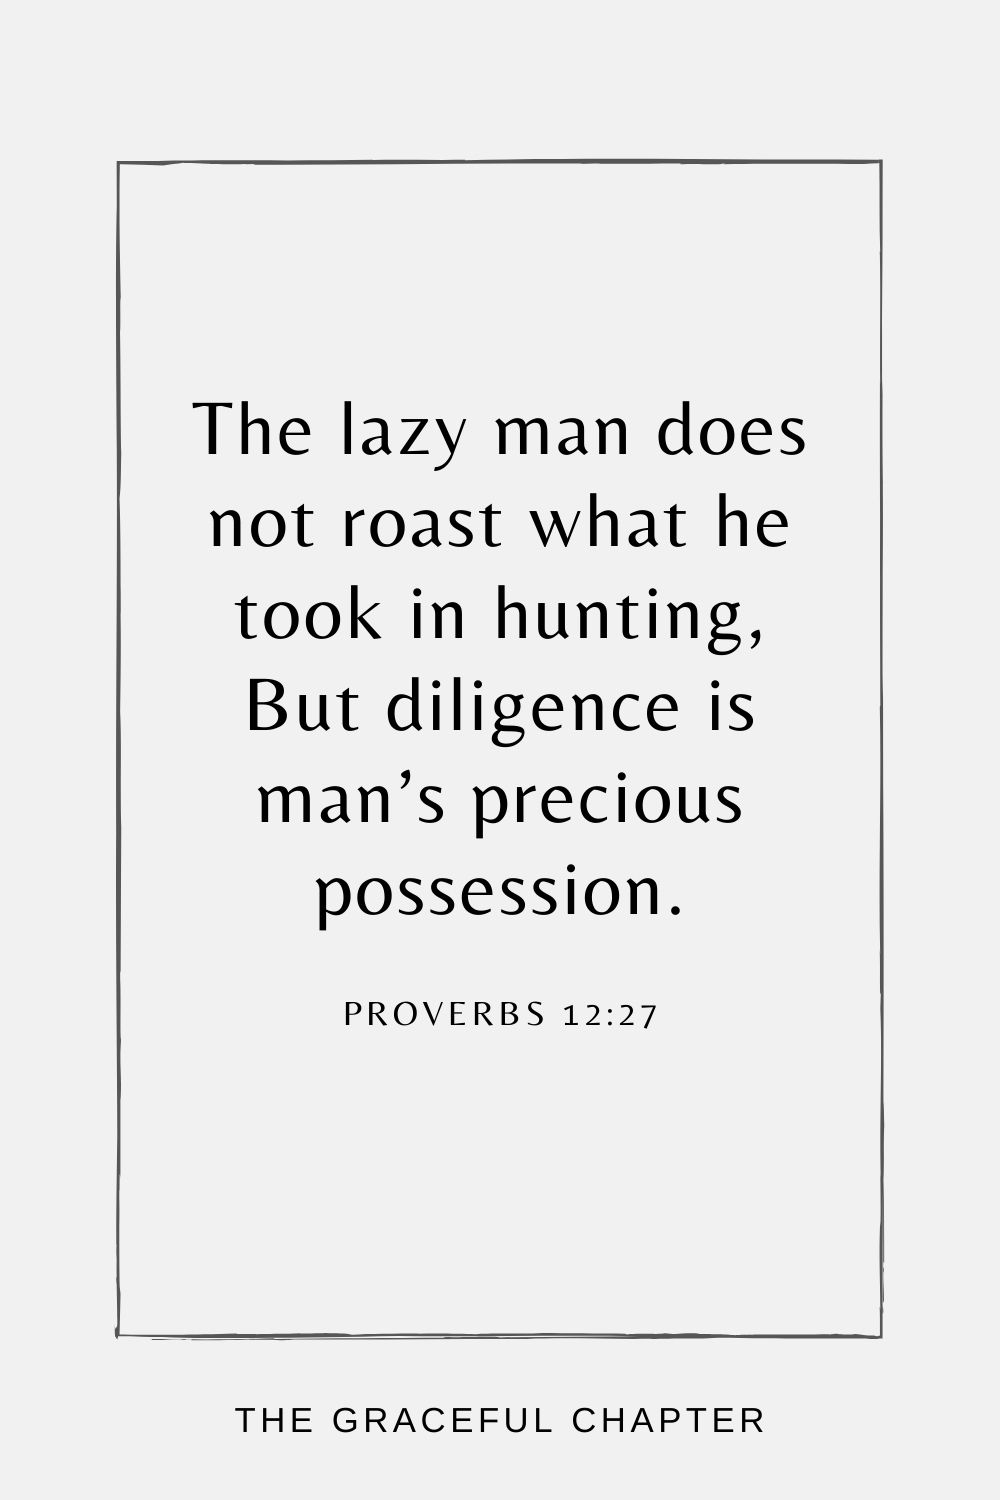 The lazy man does not roast what he took in hunting, But diligence is man's precious possession. Proverbs 12:27